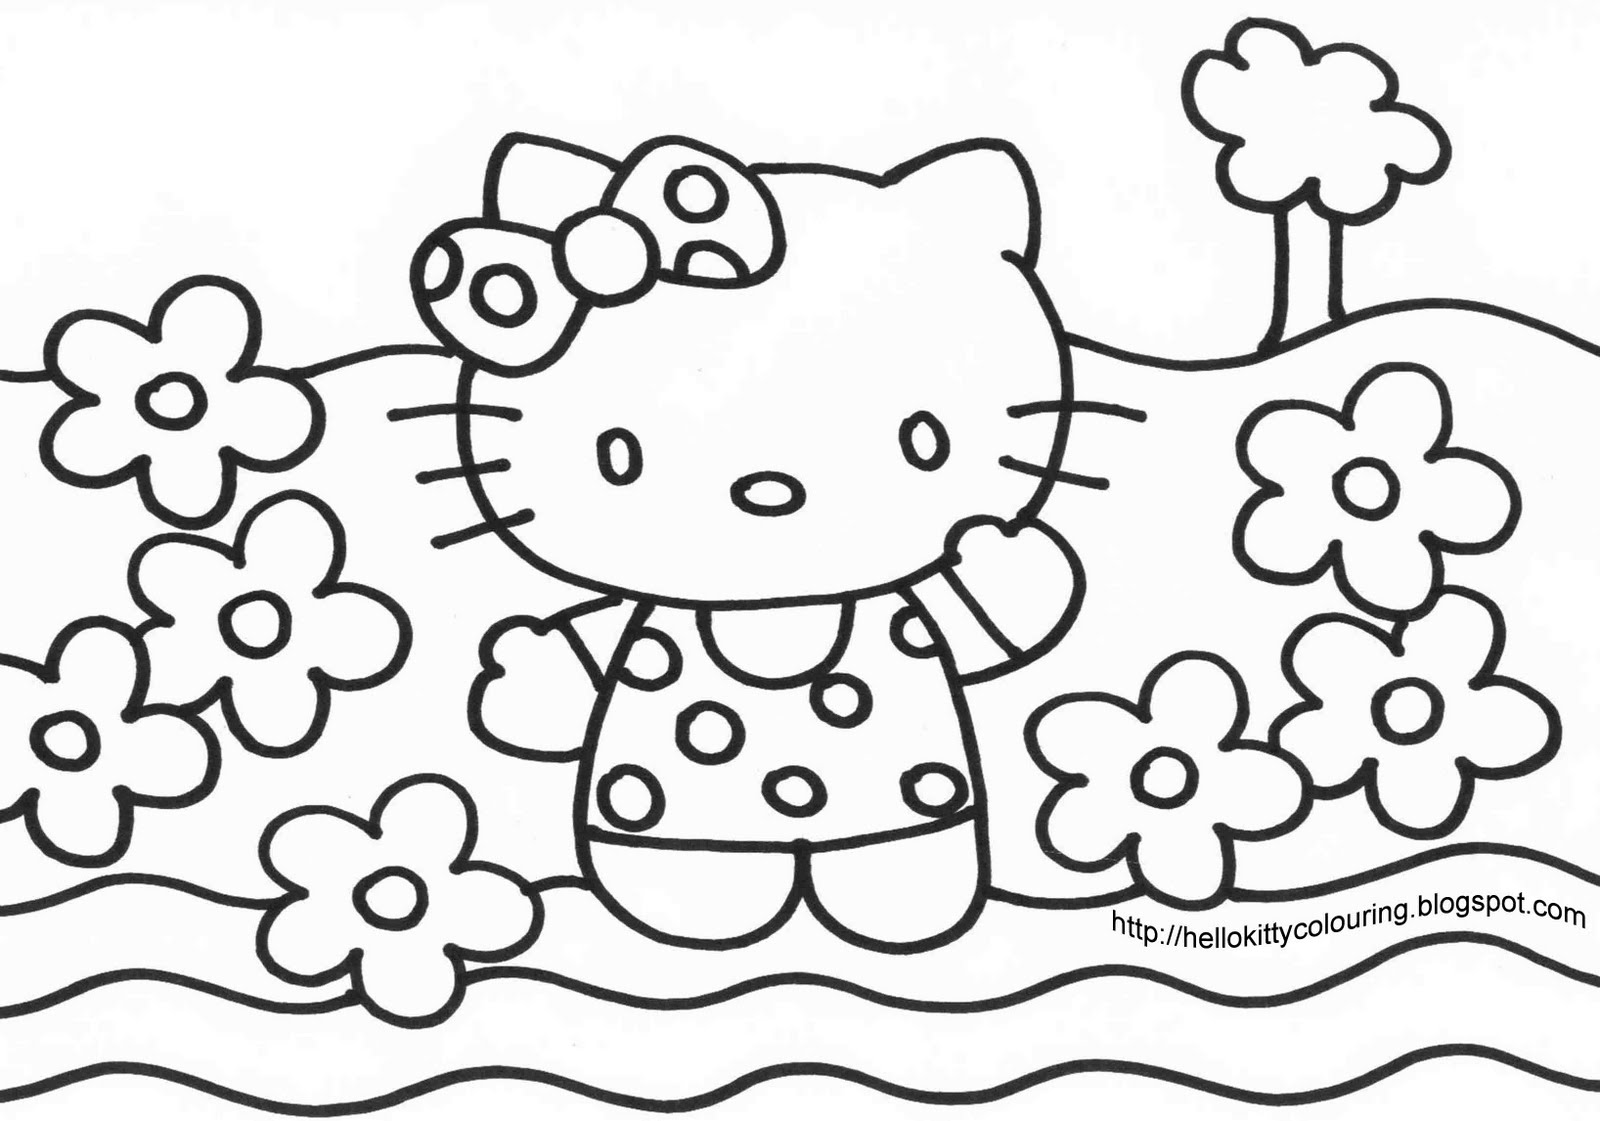 Coloriage hello kitty tete - Coloriage tete hello kitty a imprimer ...